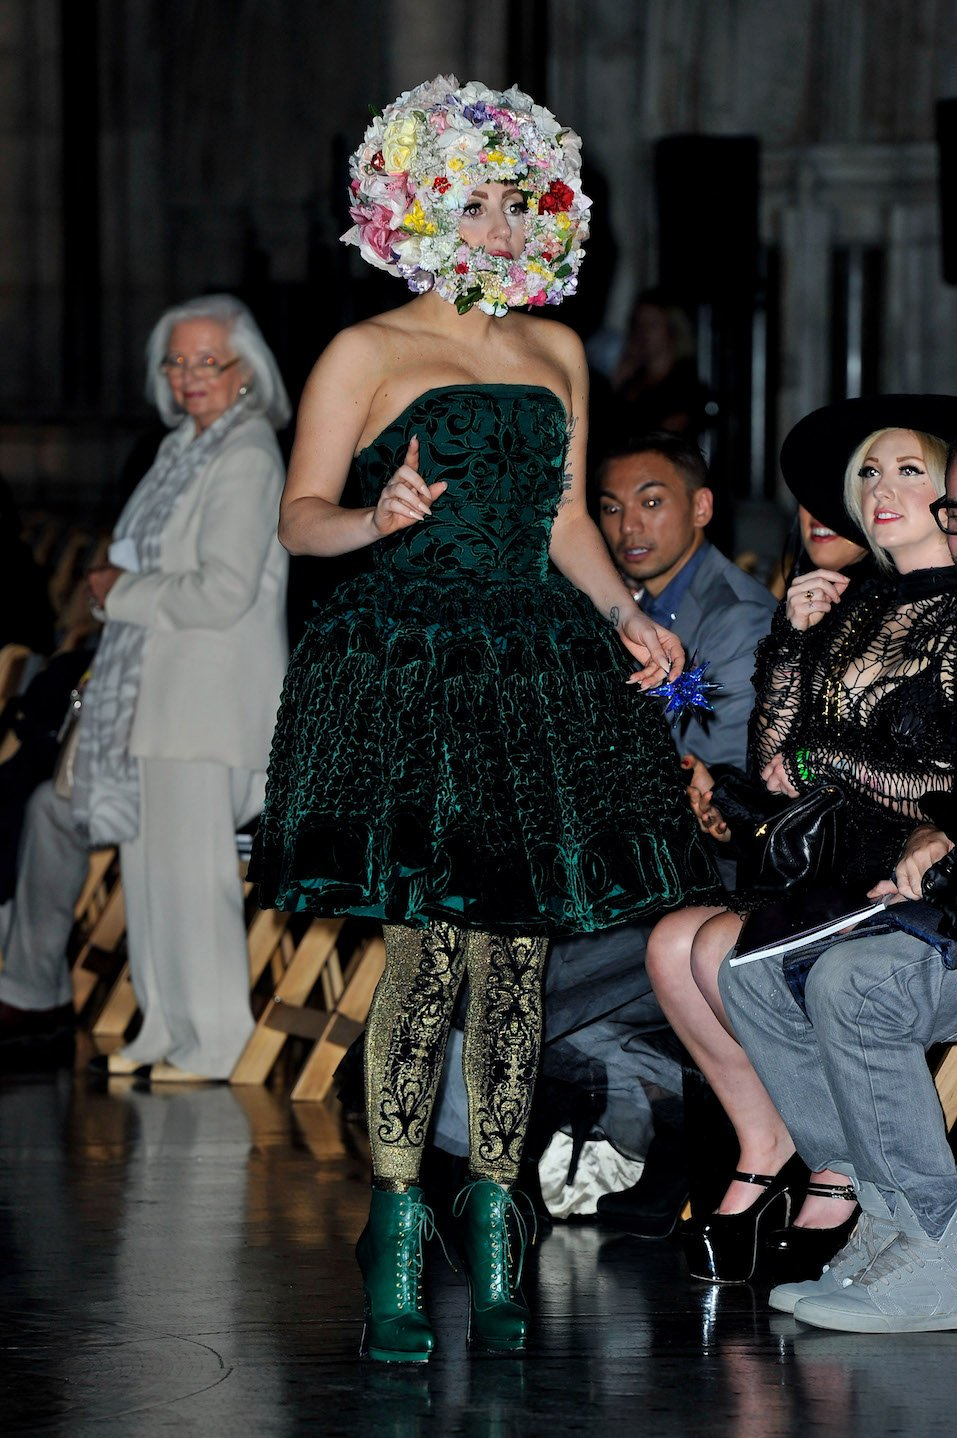 Lady Gaga attends the front row for the Philip Treacy show on day 3 of London Fashion Week